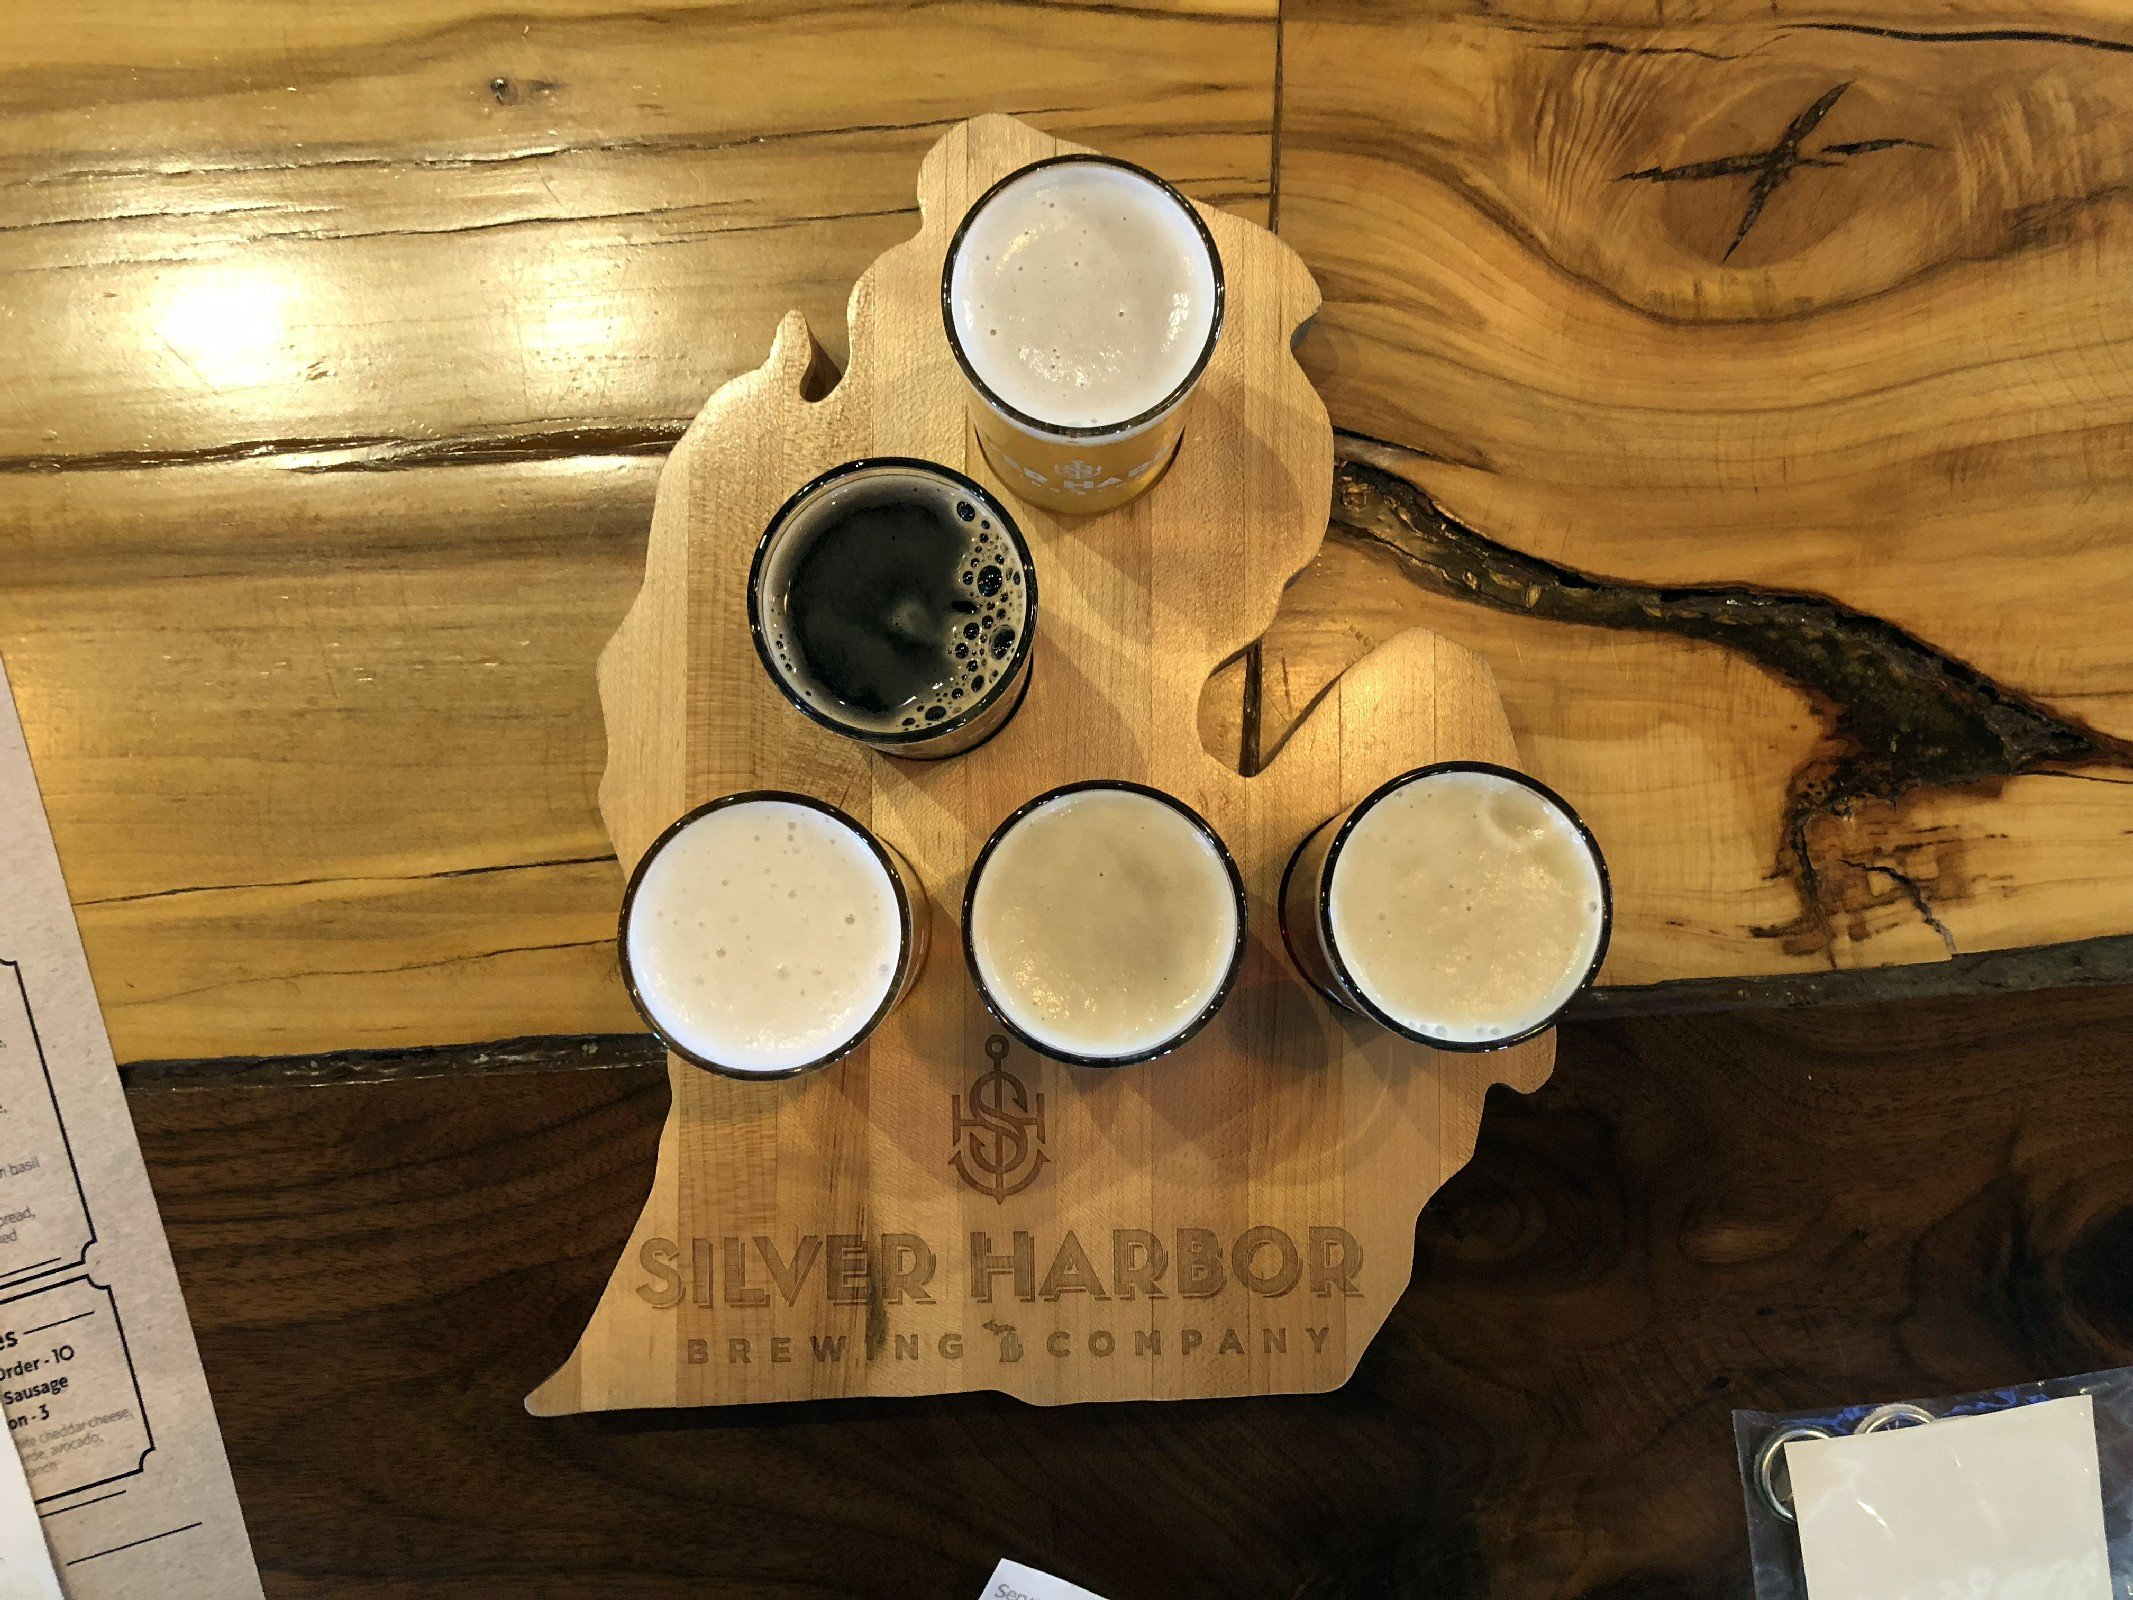 Silver Harbor Brewing Co. in St. Joseph, MI by Jets Like Taxis / Hopsmash